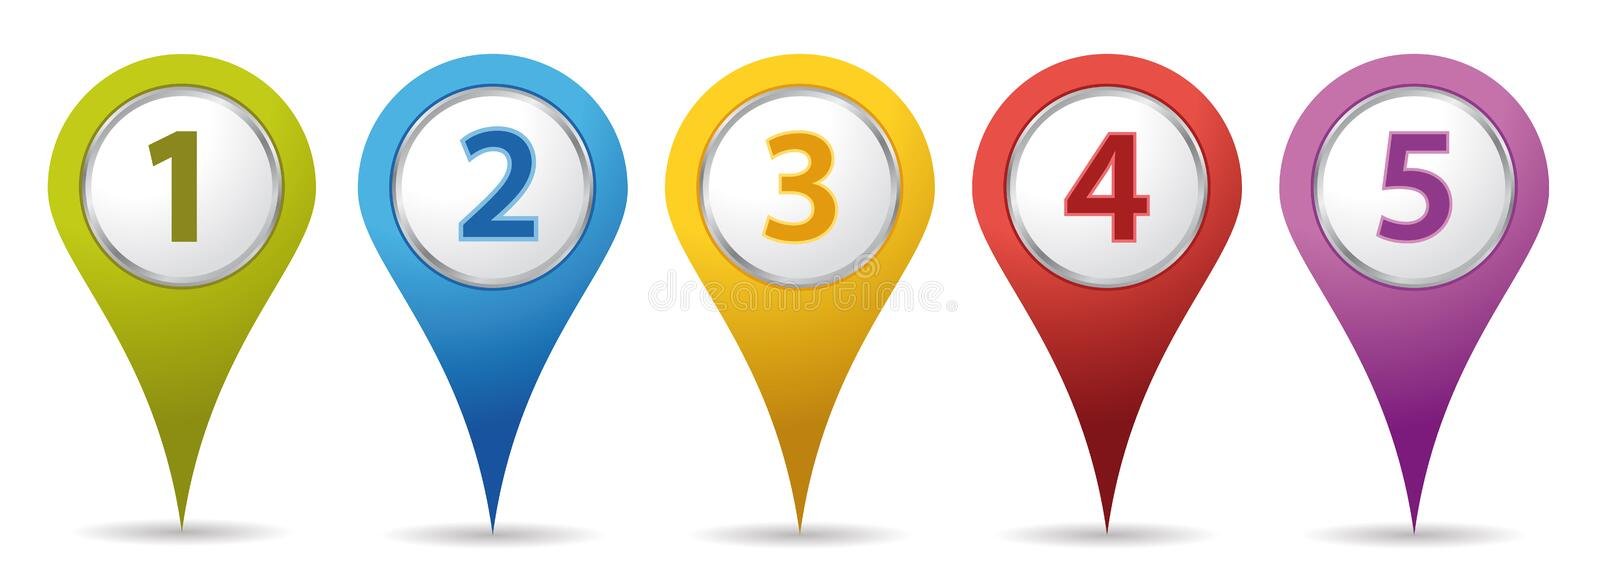 Location number pins royalty free illustration